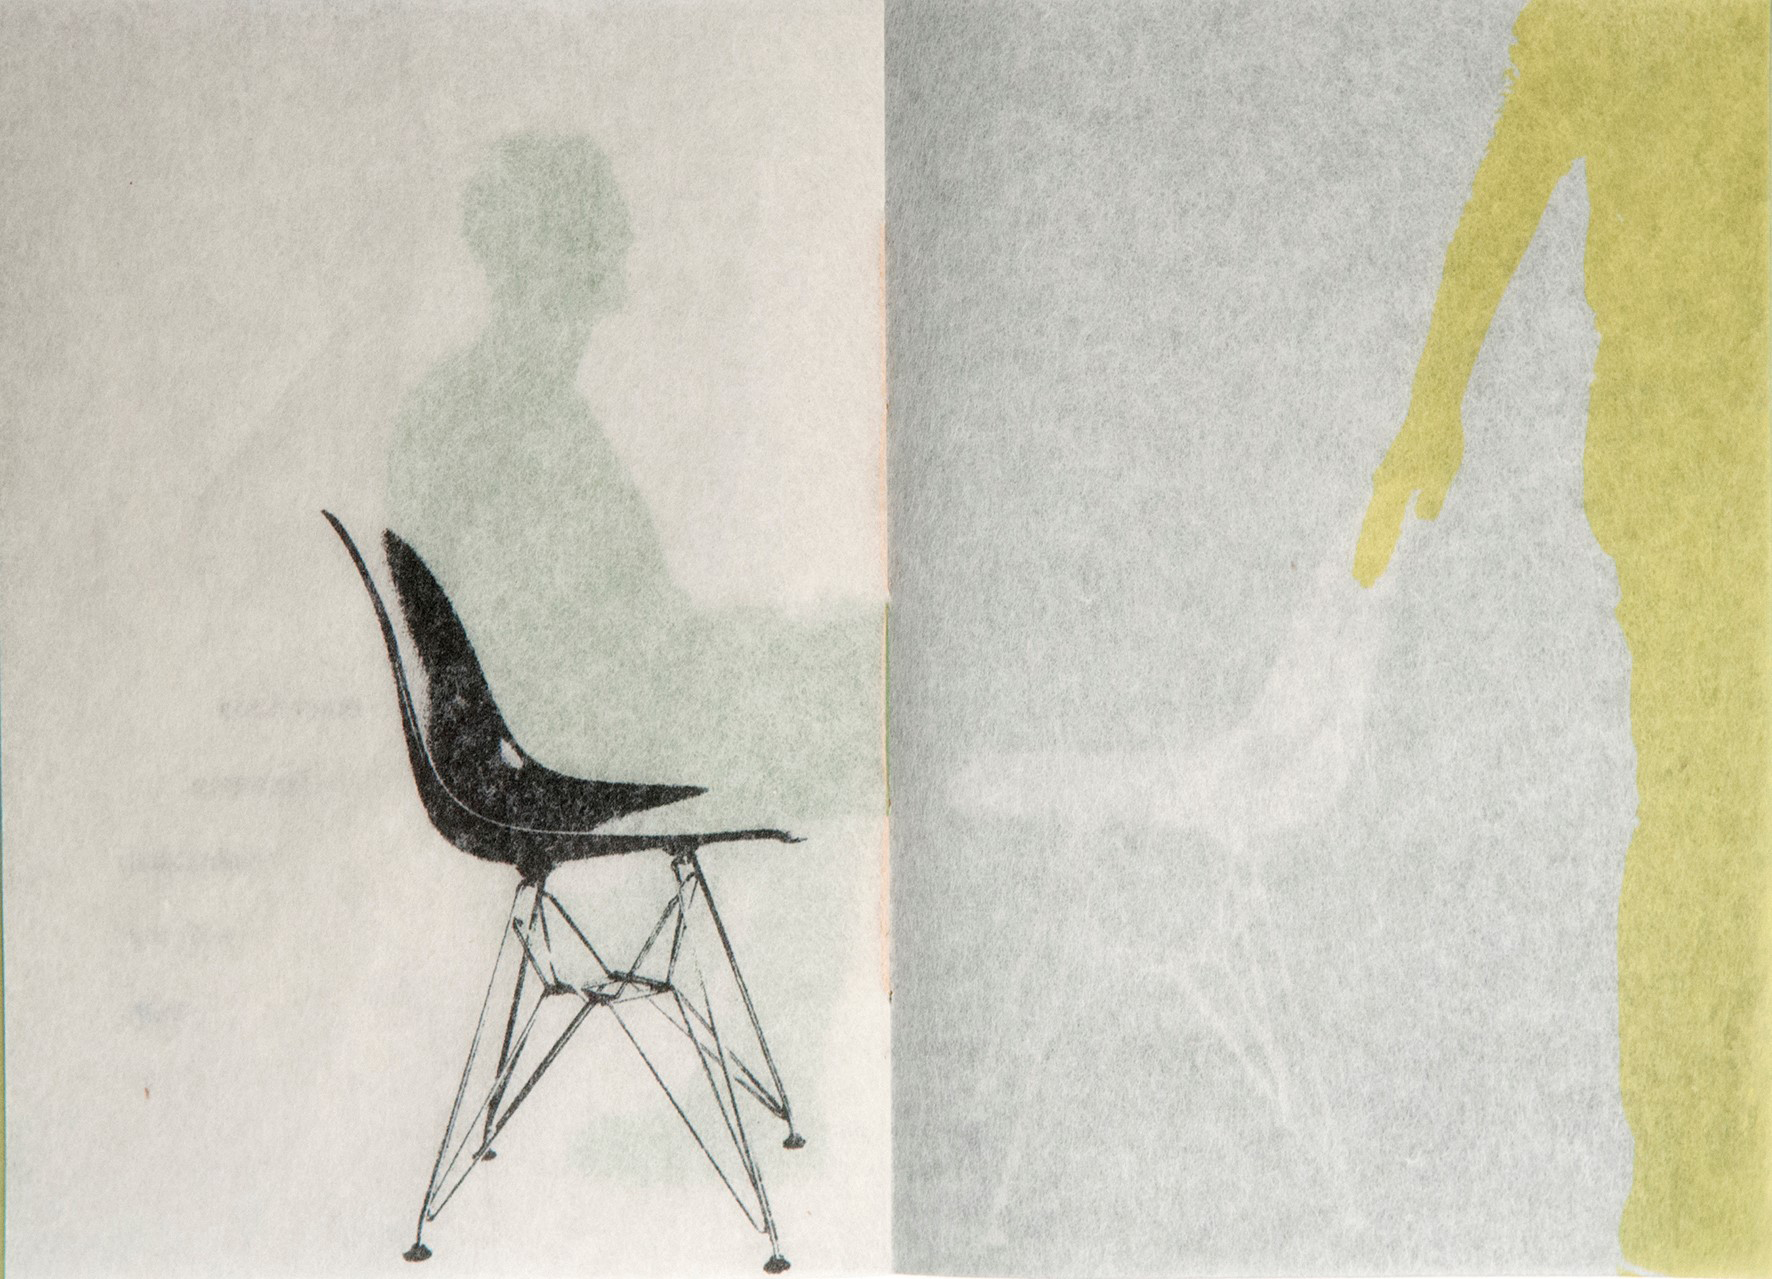 Chair illustration, by Caroline Penn.